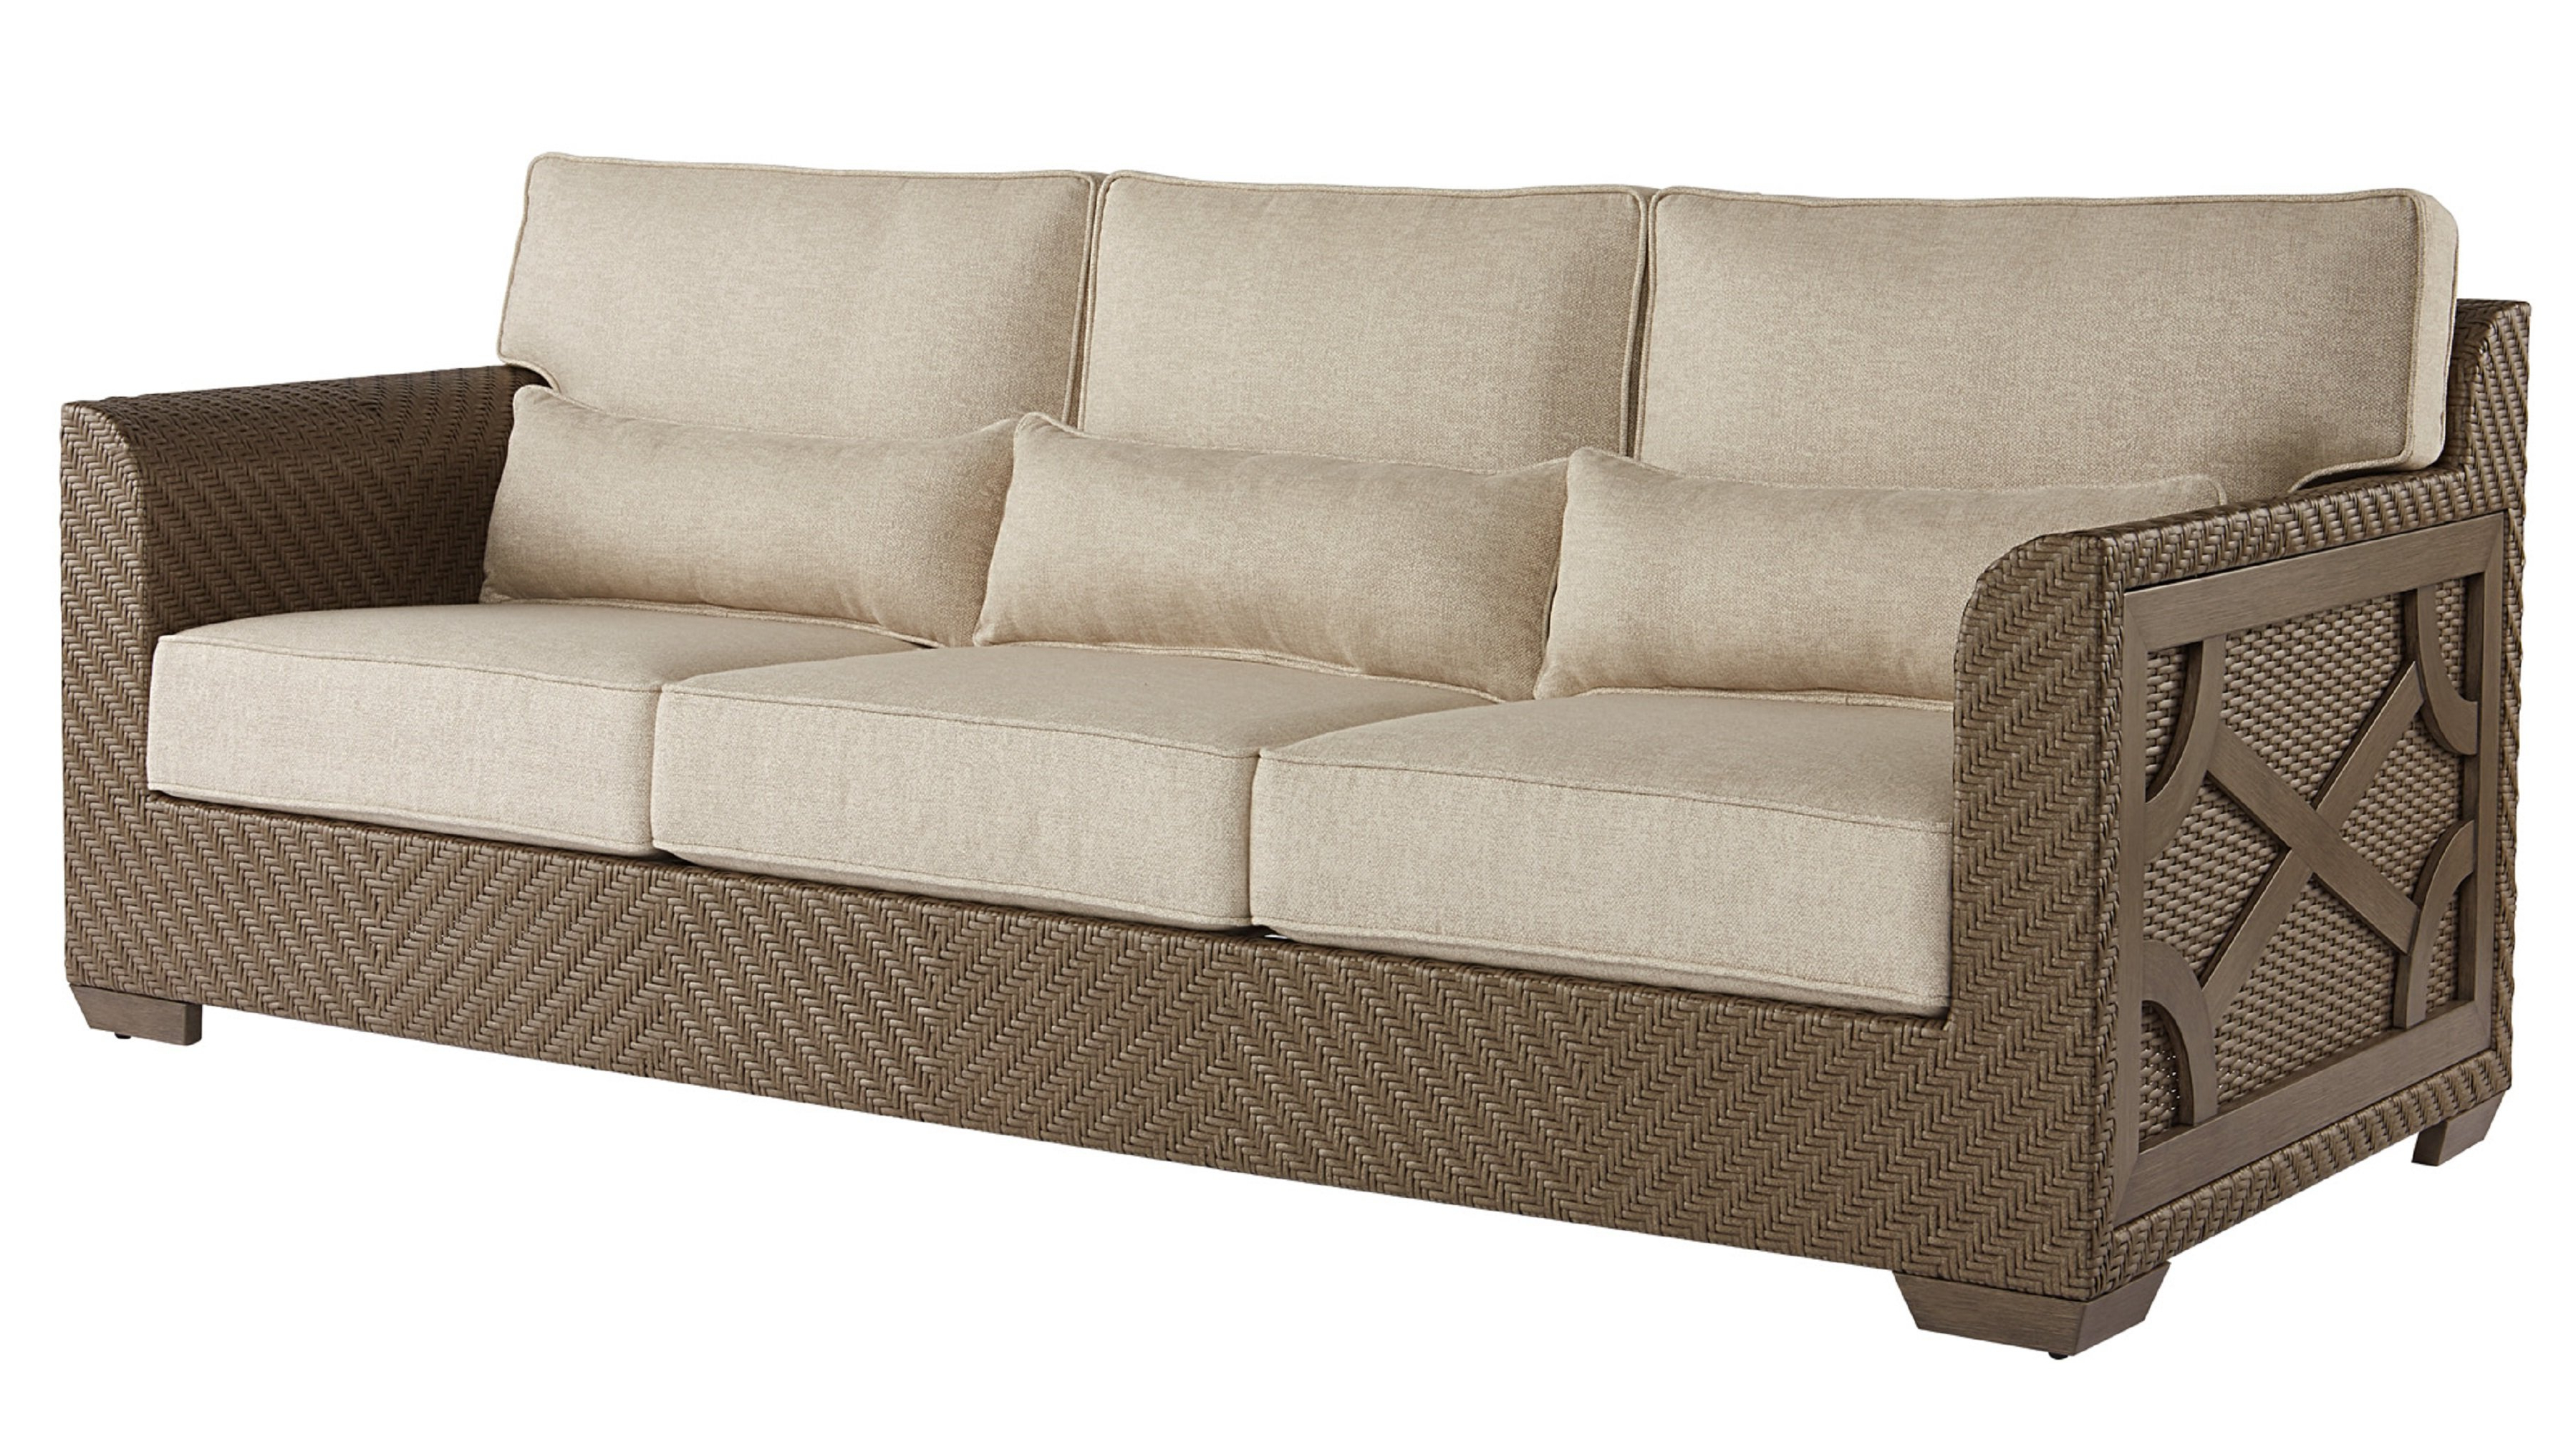 Astrid Wicker Patio Sofa With Cushions In Most Popular Loggins Patio Sofas With Cushions (Gallery 14 of 20)